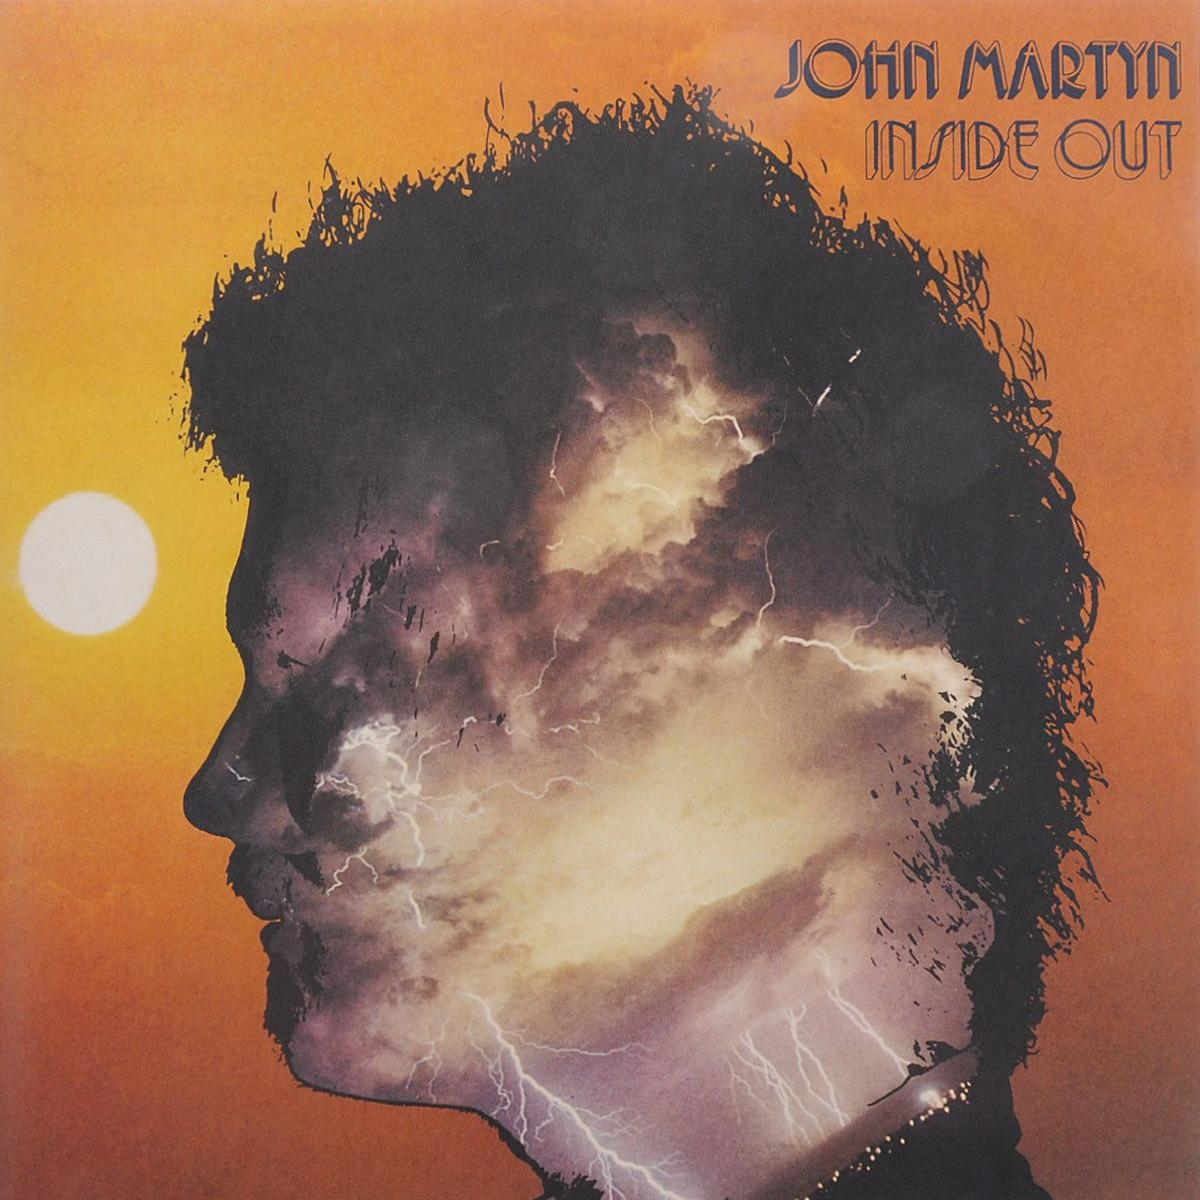 John Martyn - Inside Out (1973)